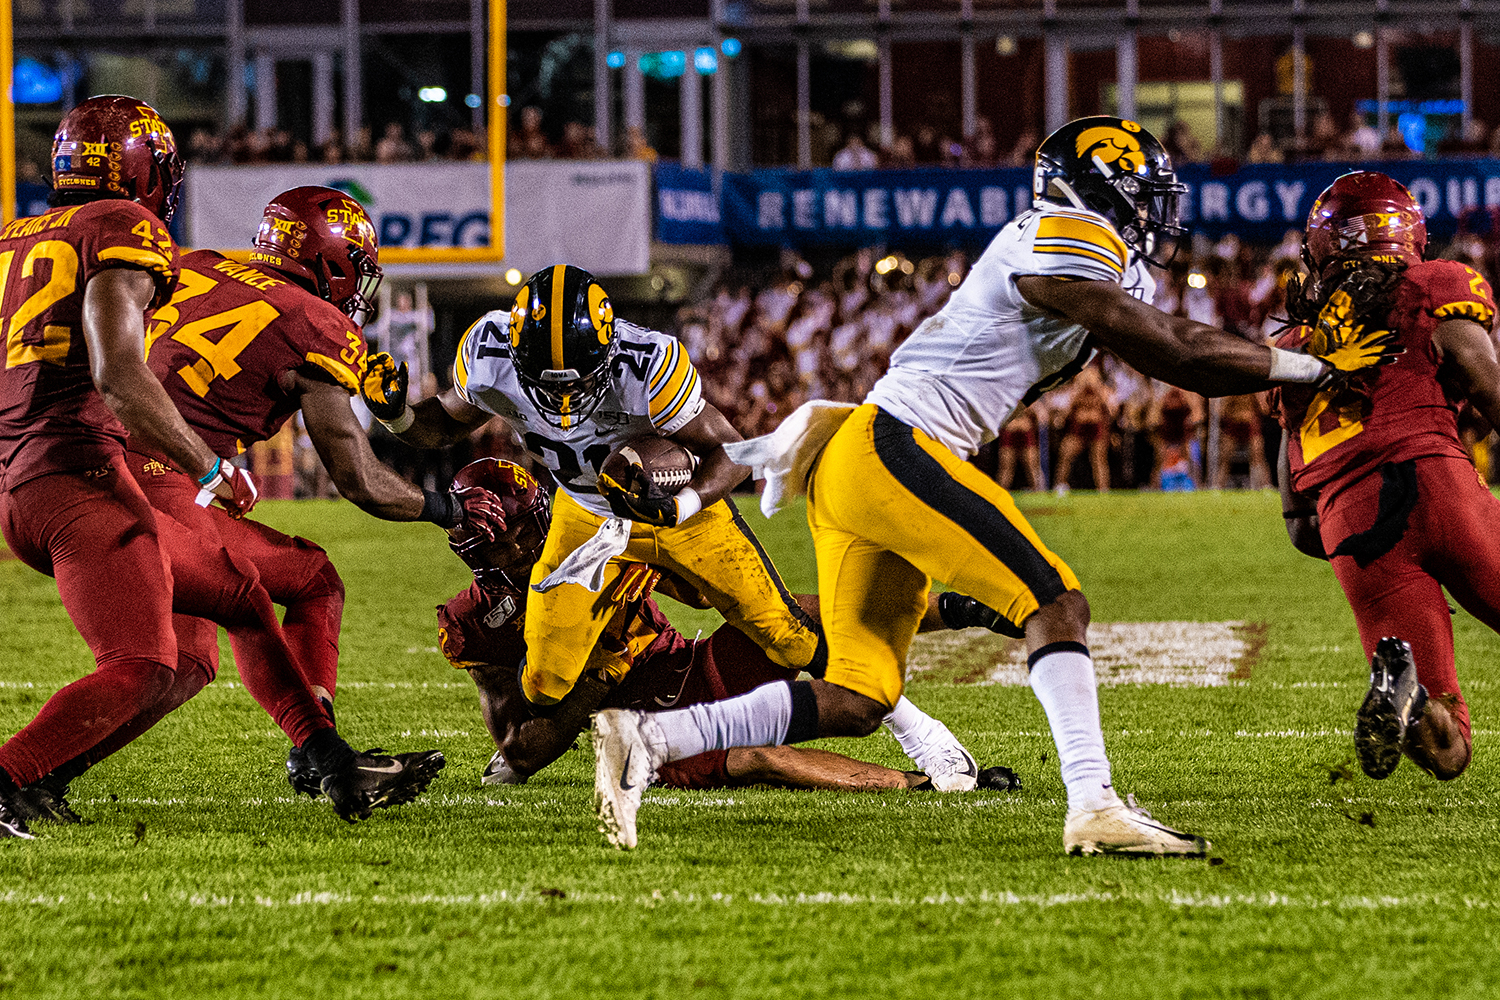 Iowa running back Ivory Kelly-Martin carries the ball during a football game between Iowa and Iowa State at Jack Trice Stadium in Ames on Saturday, September 14, 2019. The Hawkeyes retained the Cy-Hawk Trophy for the fifth consecutive year, downing the Cyclones, 18-17.